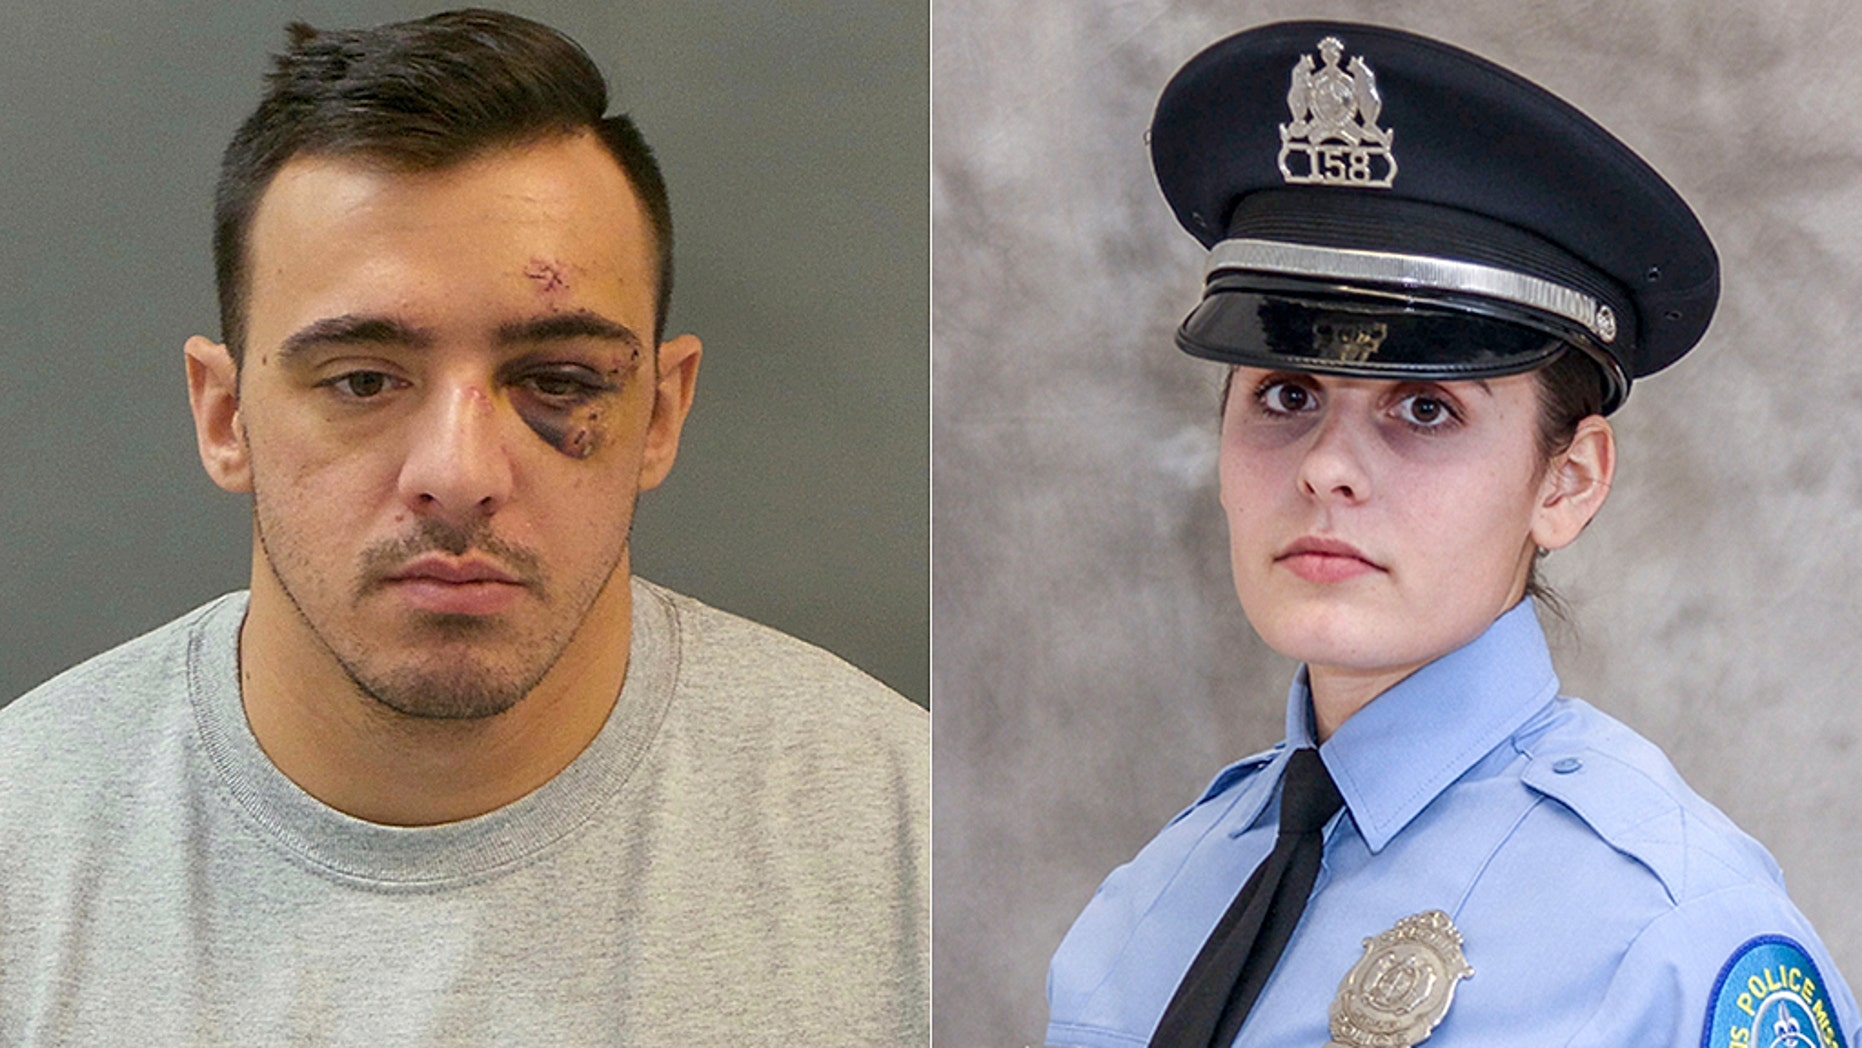 St. Louis Police Officer Nathaniel Hendren, 29, is being charged with involuntary manslaughter when police officer Katlyn Alix, 24, was shot dead.